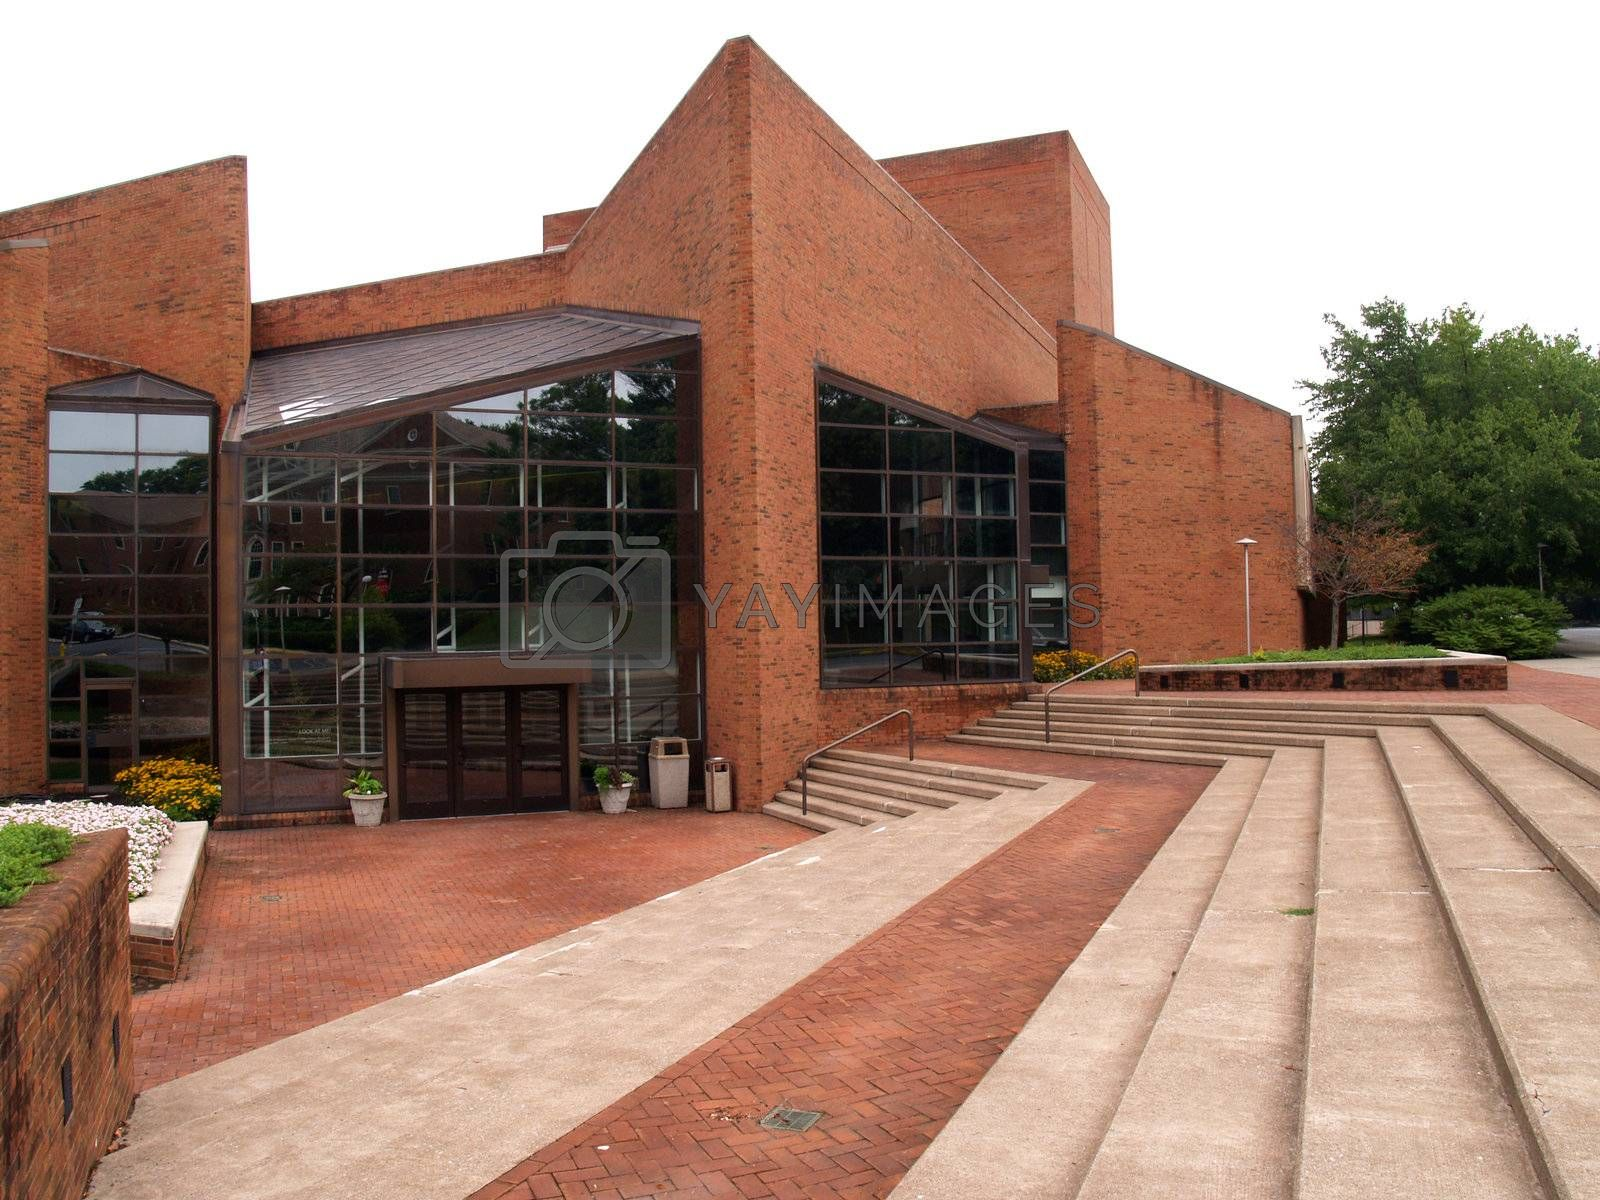 modern red brick building with many angles